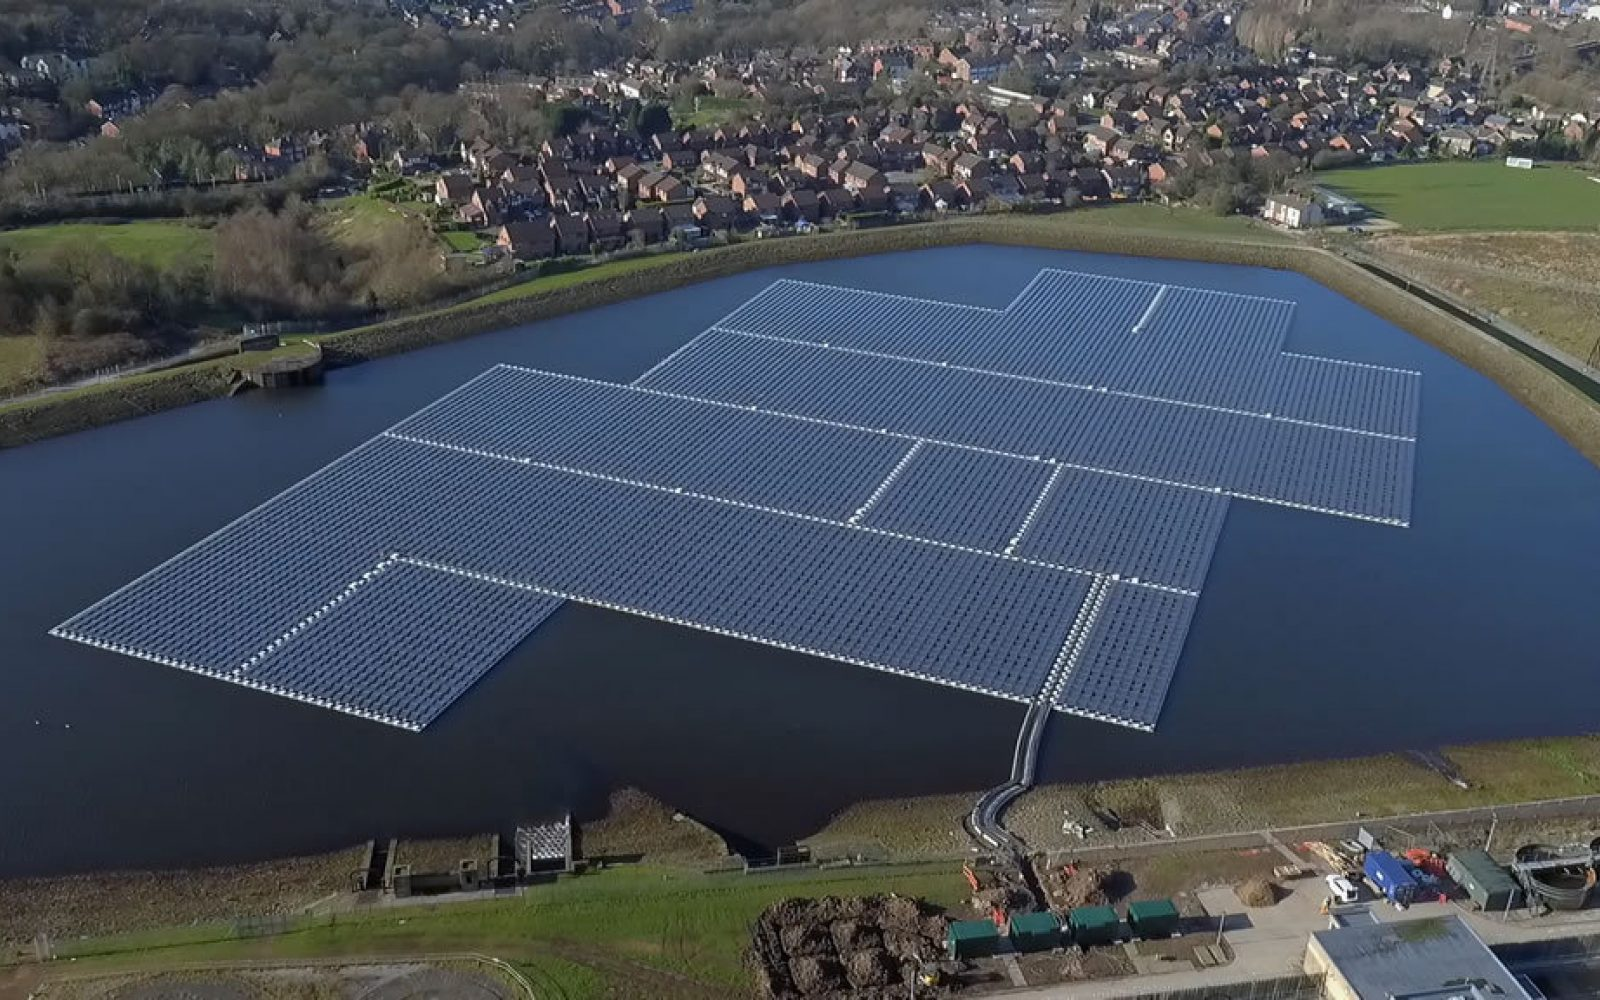 United Utilities already sources 21% of its energy demand from on-site generation, including from this floating solar installation. Image: Forrest.